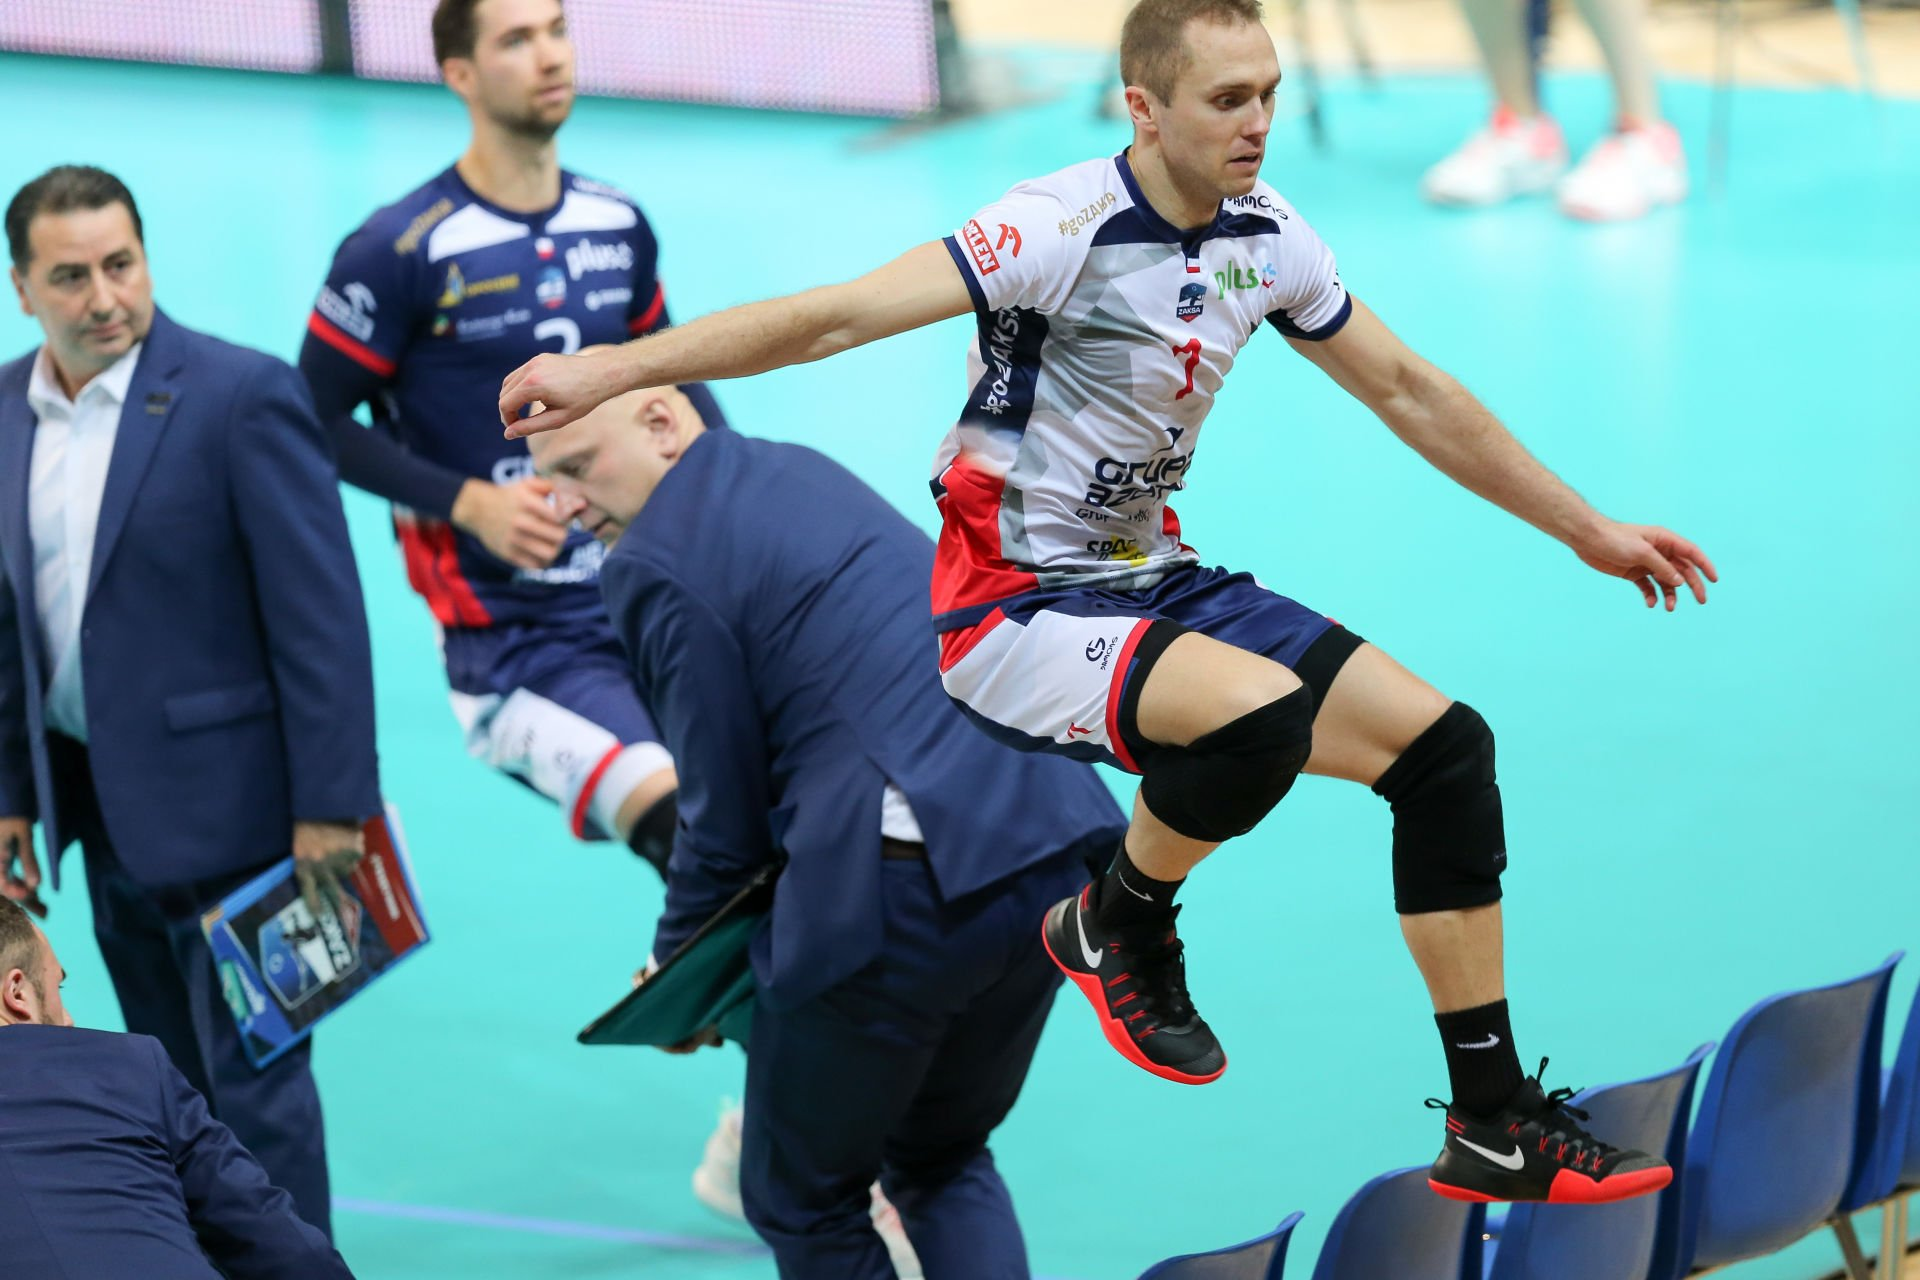 14.12.2016, Warszawa, siatkowka, Plus Liga, ONICO AZS Politechnika Warszawska - ZAKSA Kedzierzyn Kozle, Pawe³ Zatorski (ZAKSA), fot. Tomasz Jastrzebowski / Foto Olimpik / NEWSPIX.PL --- Newspix.pl *** Local Caption *** www.newspix.pl mail us: info@newspix.pl call us: 0048 022 23 22 222 --- Polish Picture Agency by Ringier Axel Springer Poland